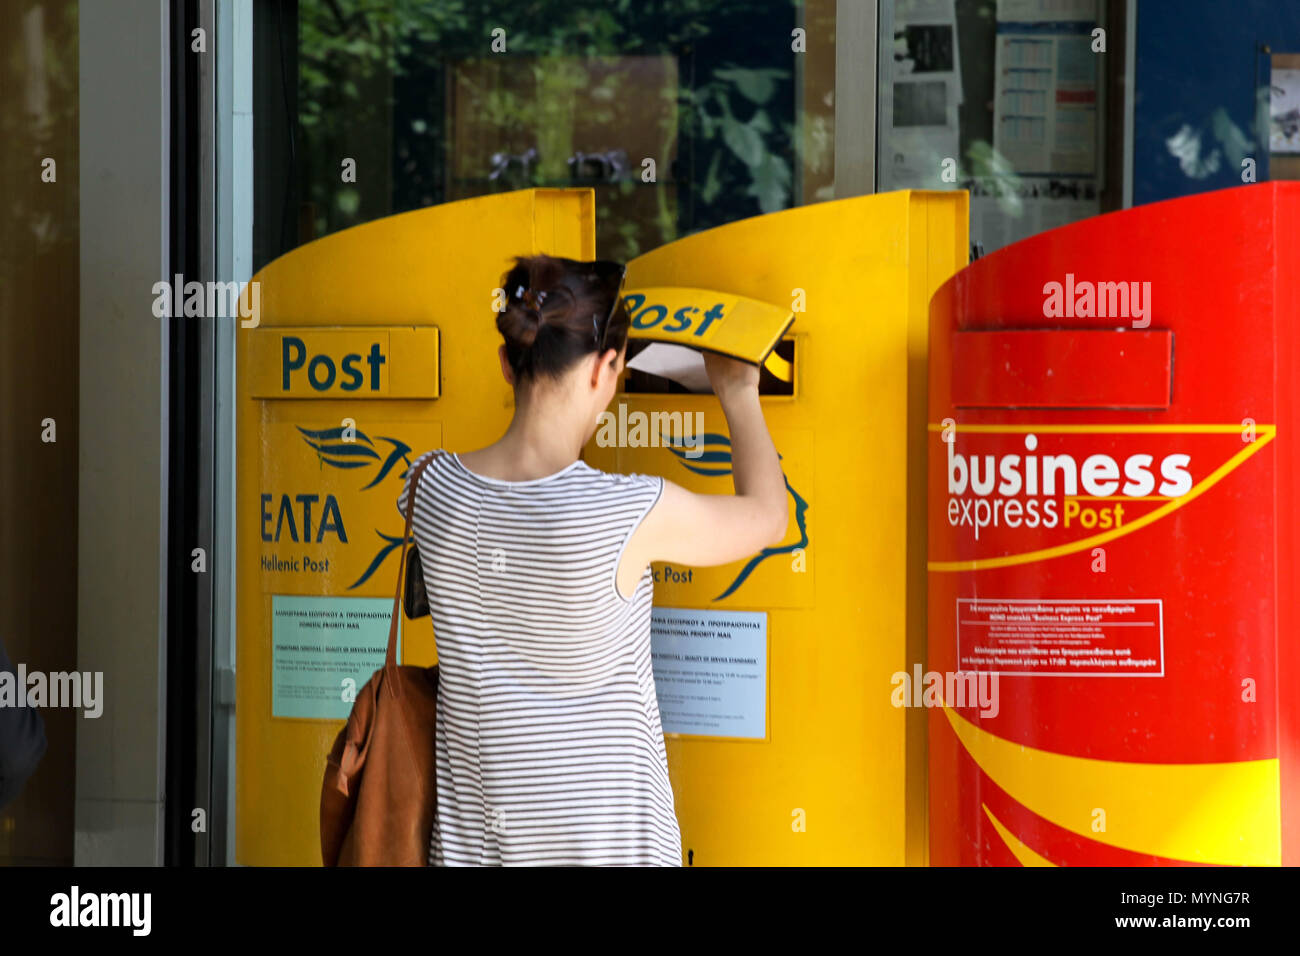 Woman posting a letter outside a Post office in Athens Greece - Stock Image